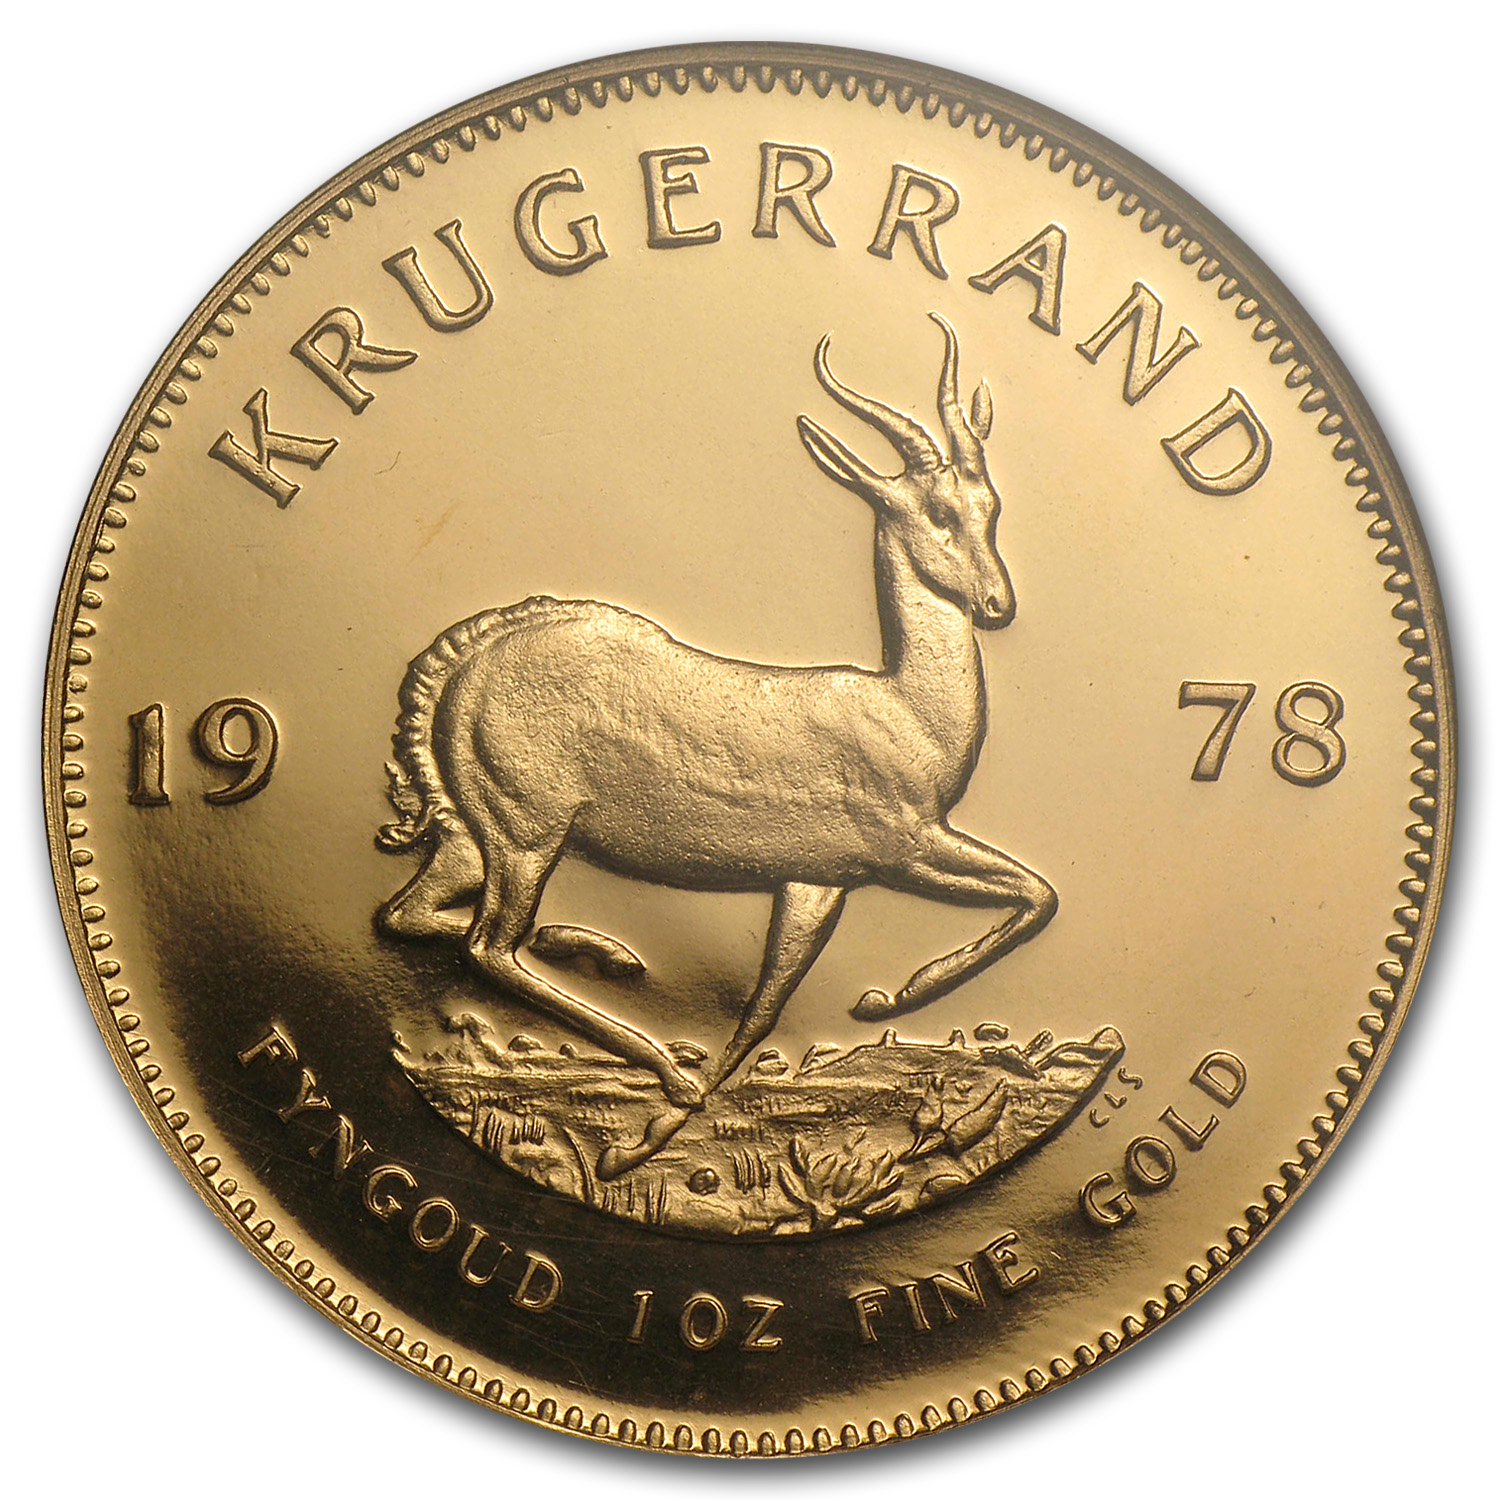 1978 South Africa 1 oz Gold Krugerrand PF-68 NGC